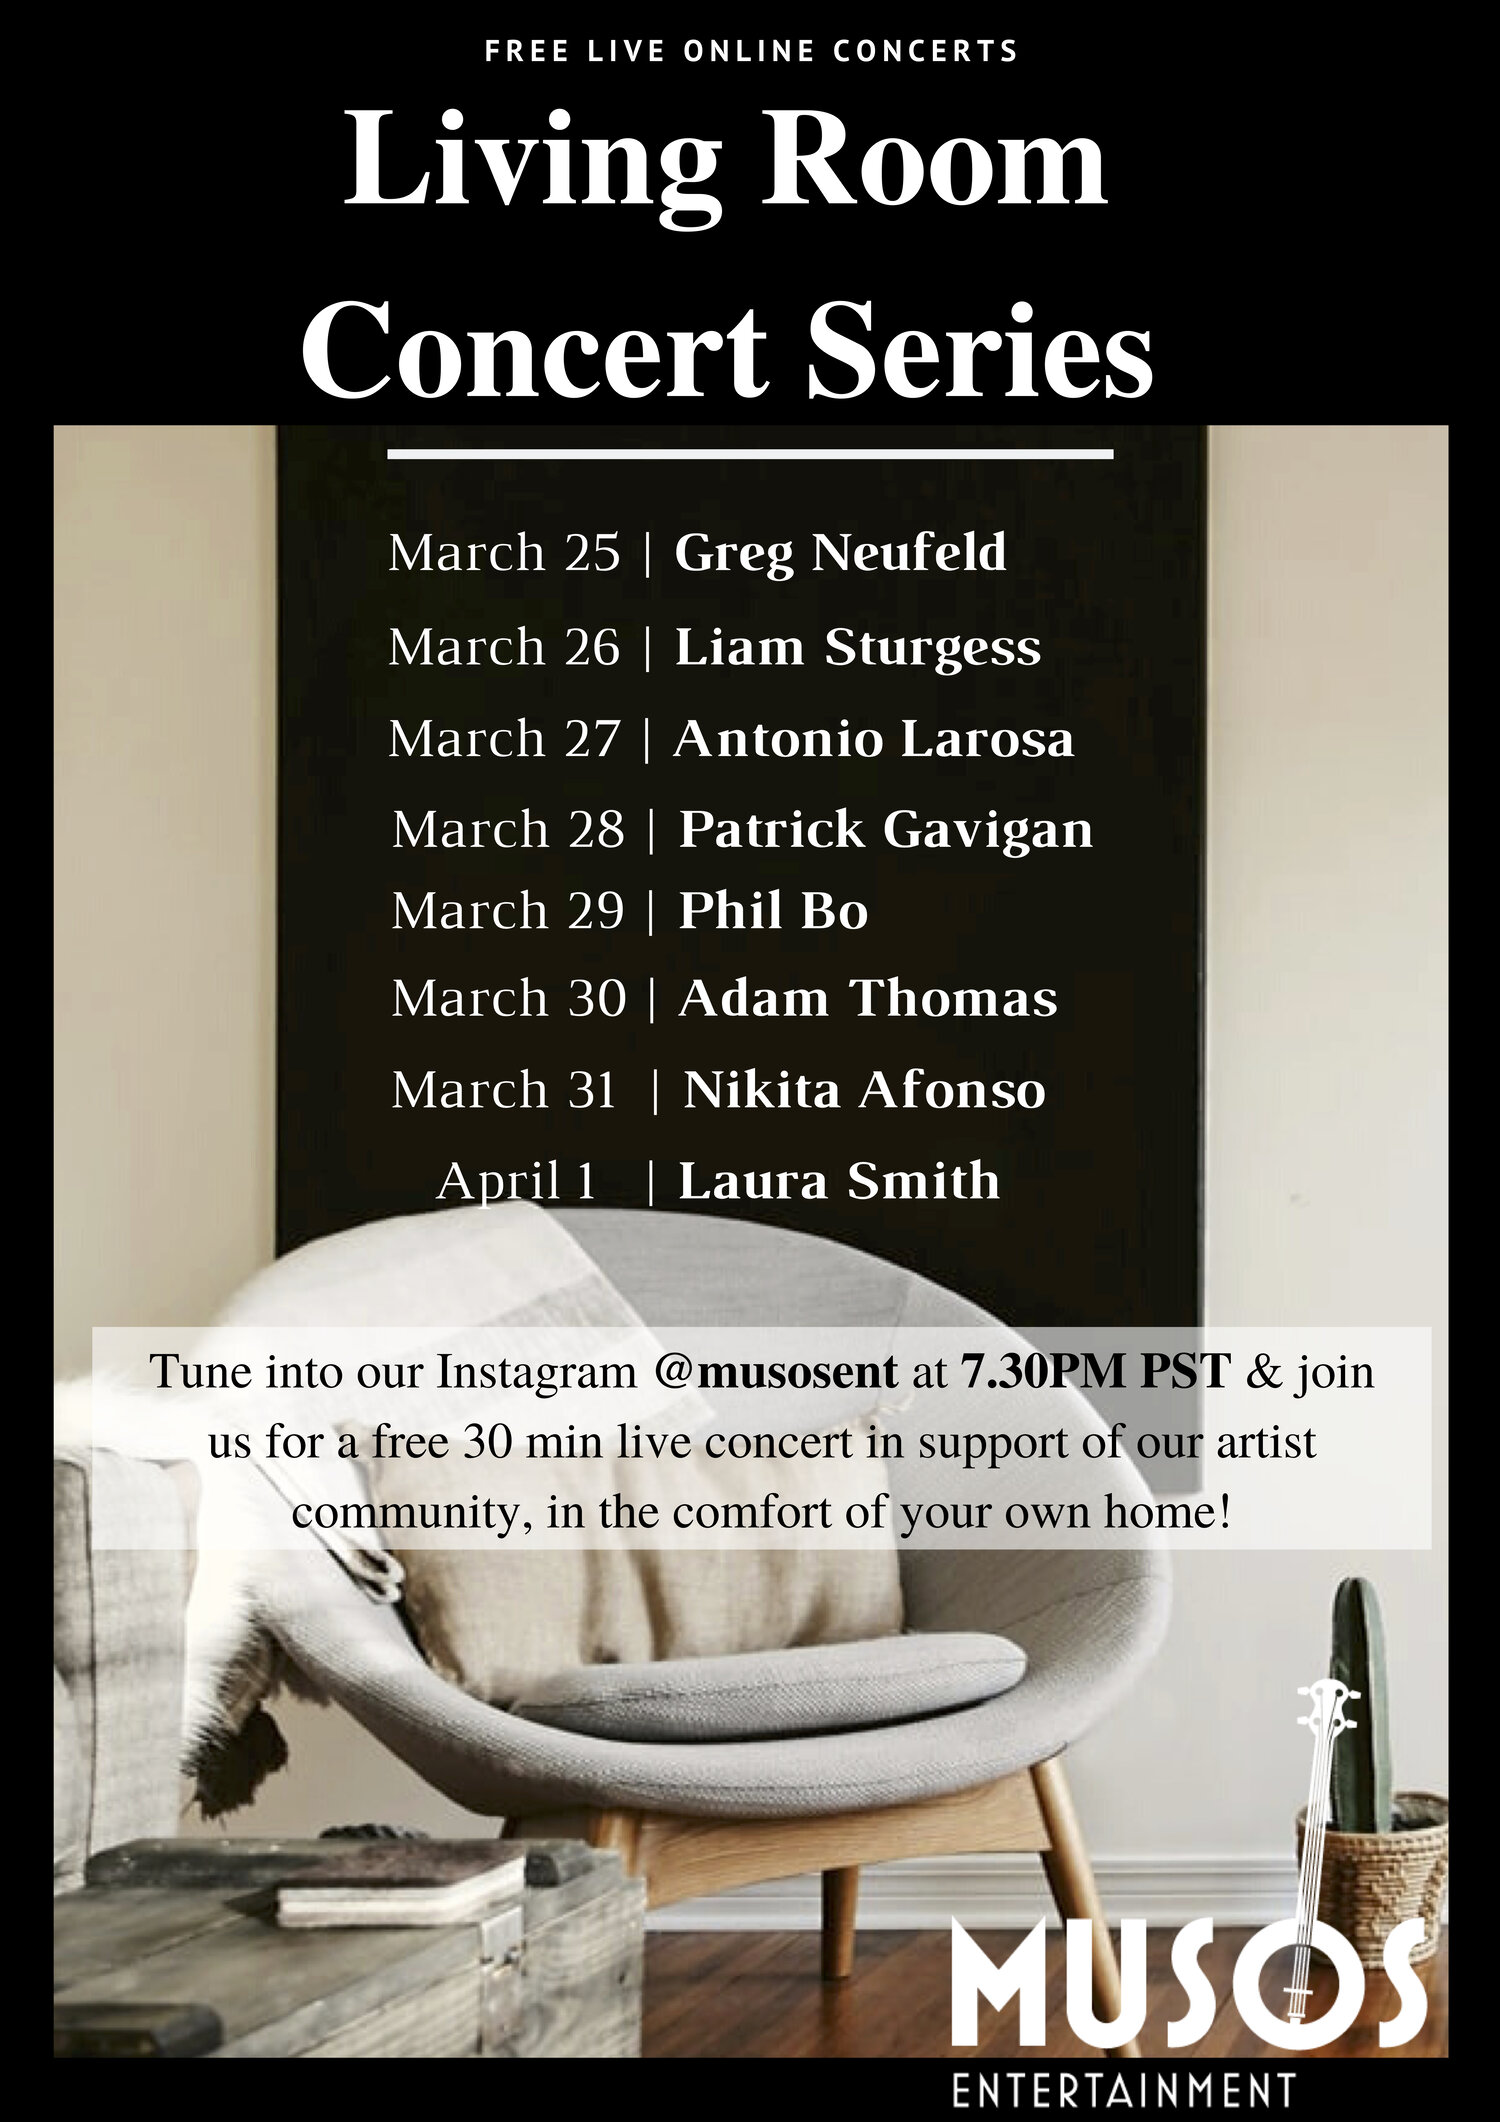 Living Room Concert Series Poster